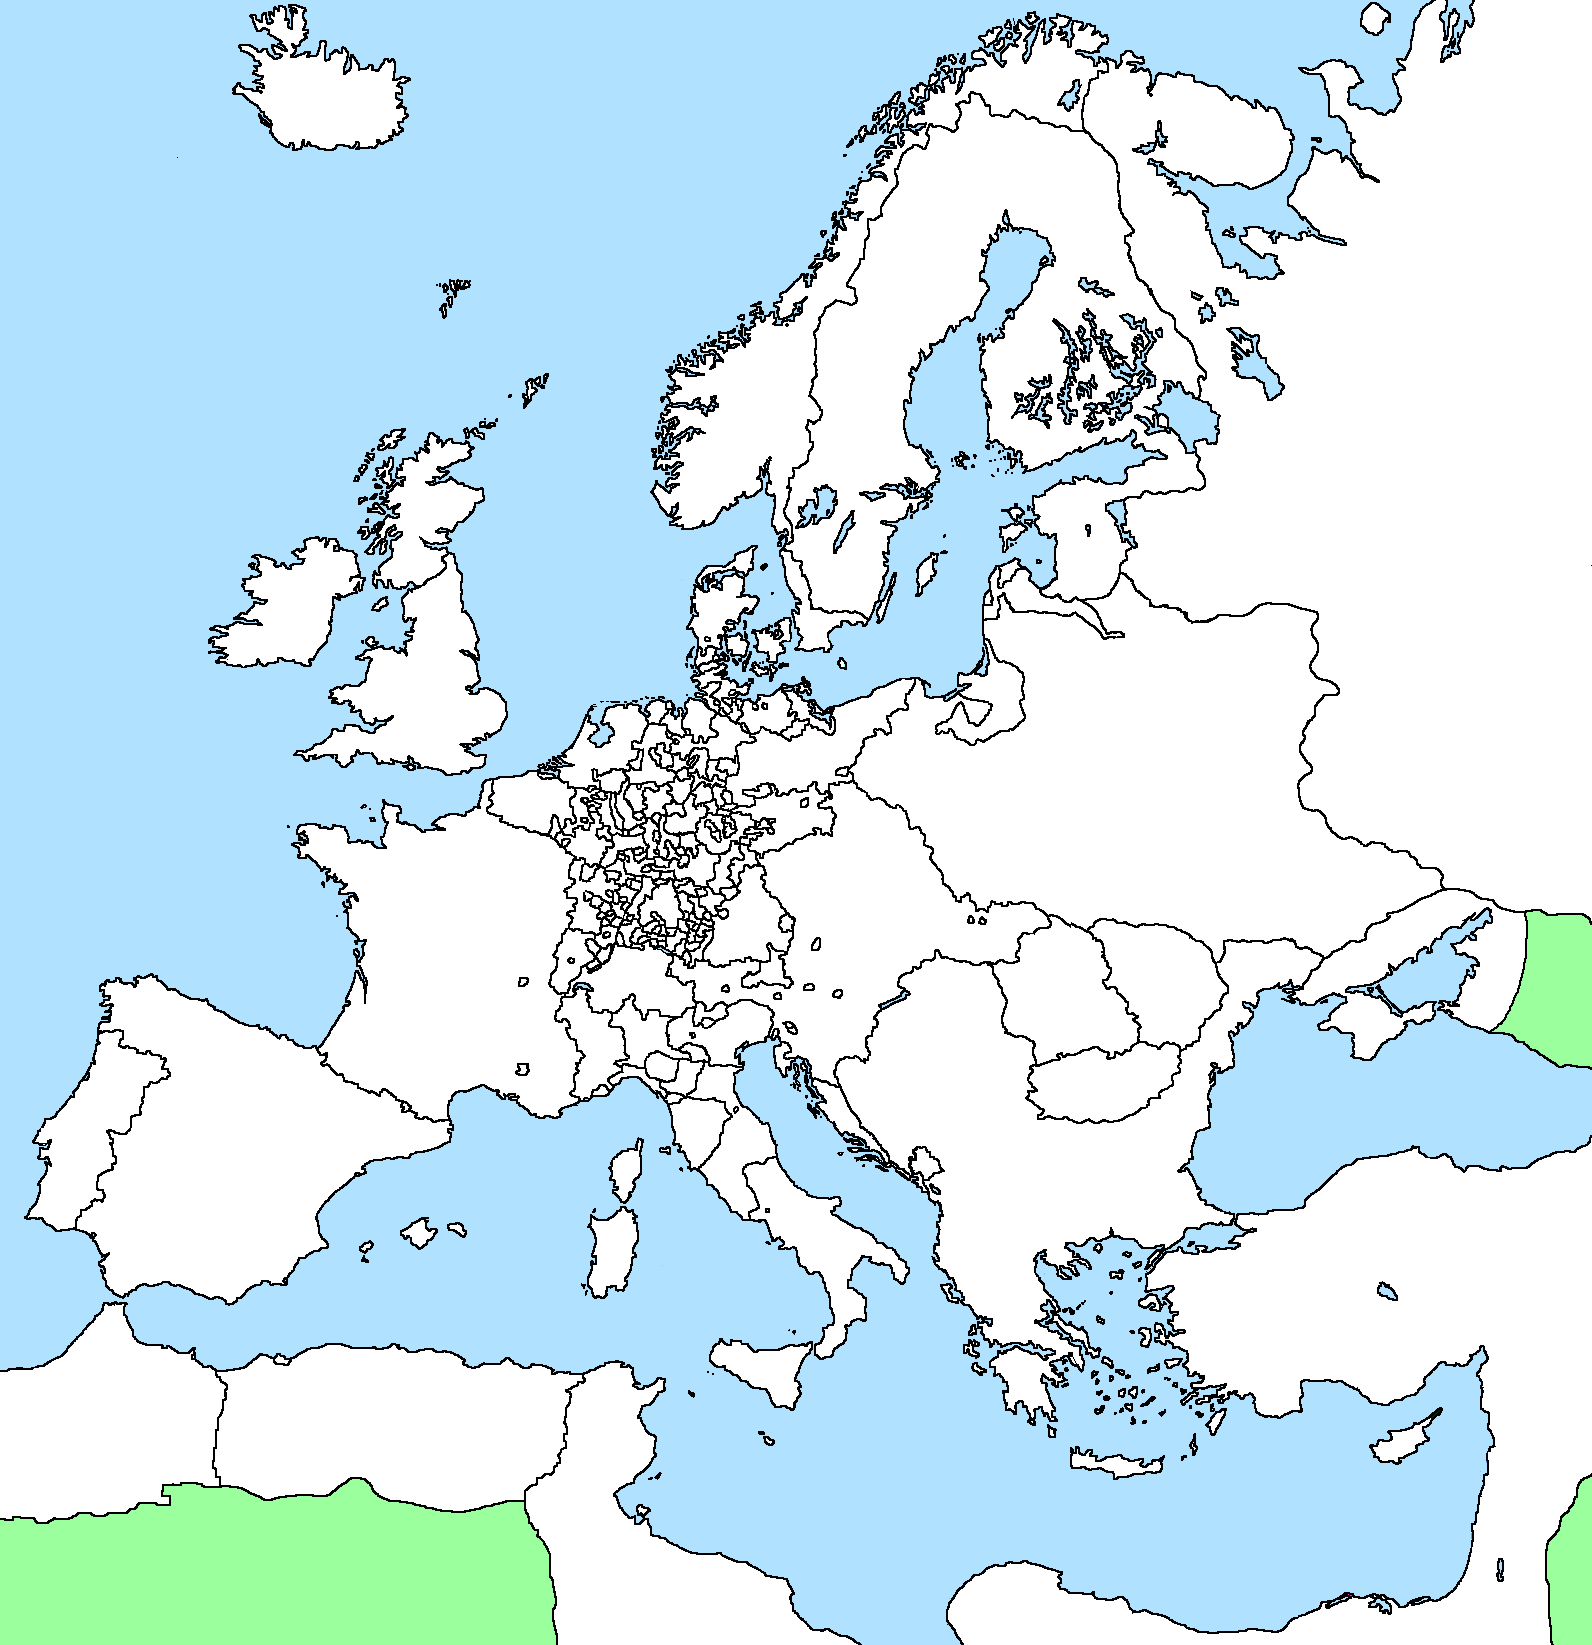 Blank Map of Europe 1648 by xGeograd on DeviantArt